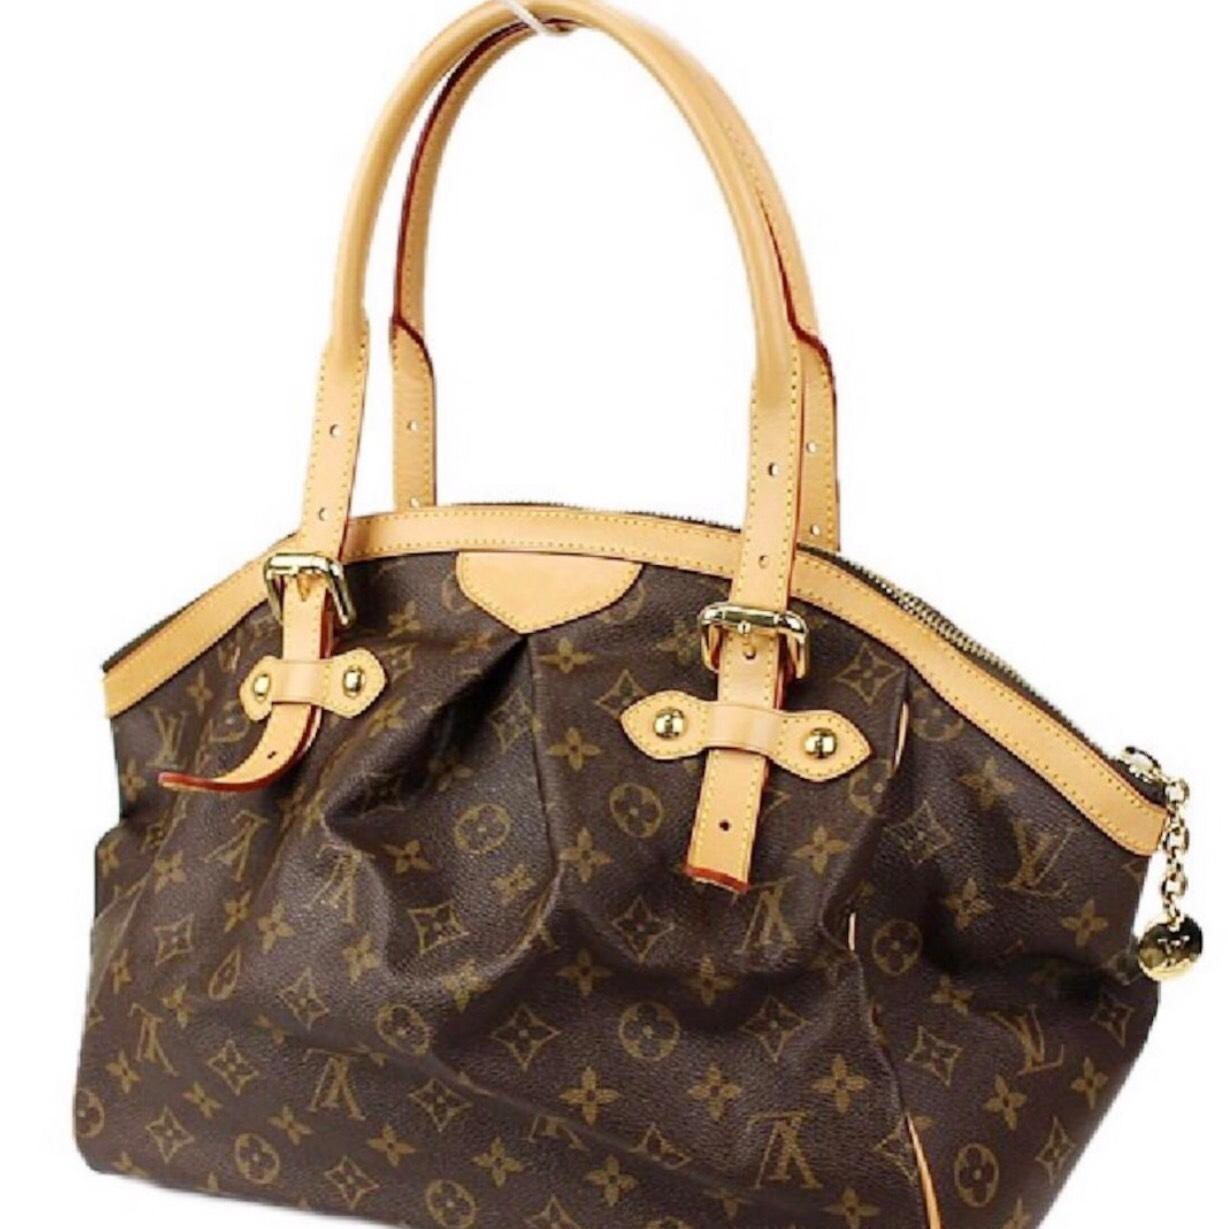 louis vuitton speedy bandouliere date code All authentic louis vuitton handbags since the early 1980's have date codes date codes are a series of numbers and letters that represent the date the bag was made and the factory where it was made these date counterfeiters are getting rich knocking off designer bags and some have the fonts almost exact almost.